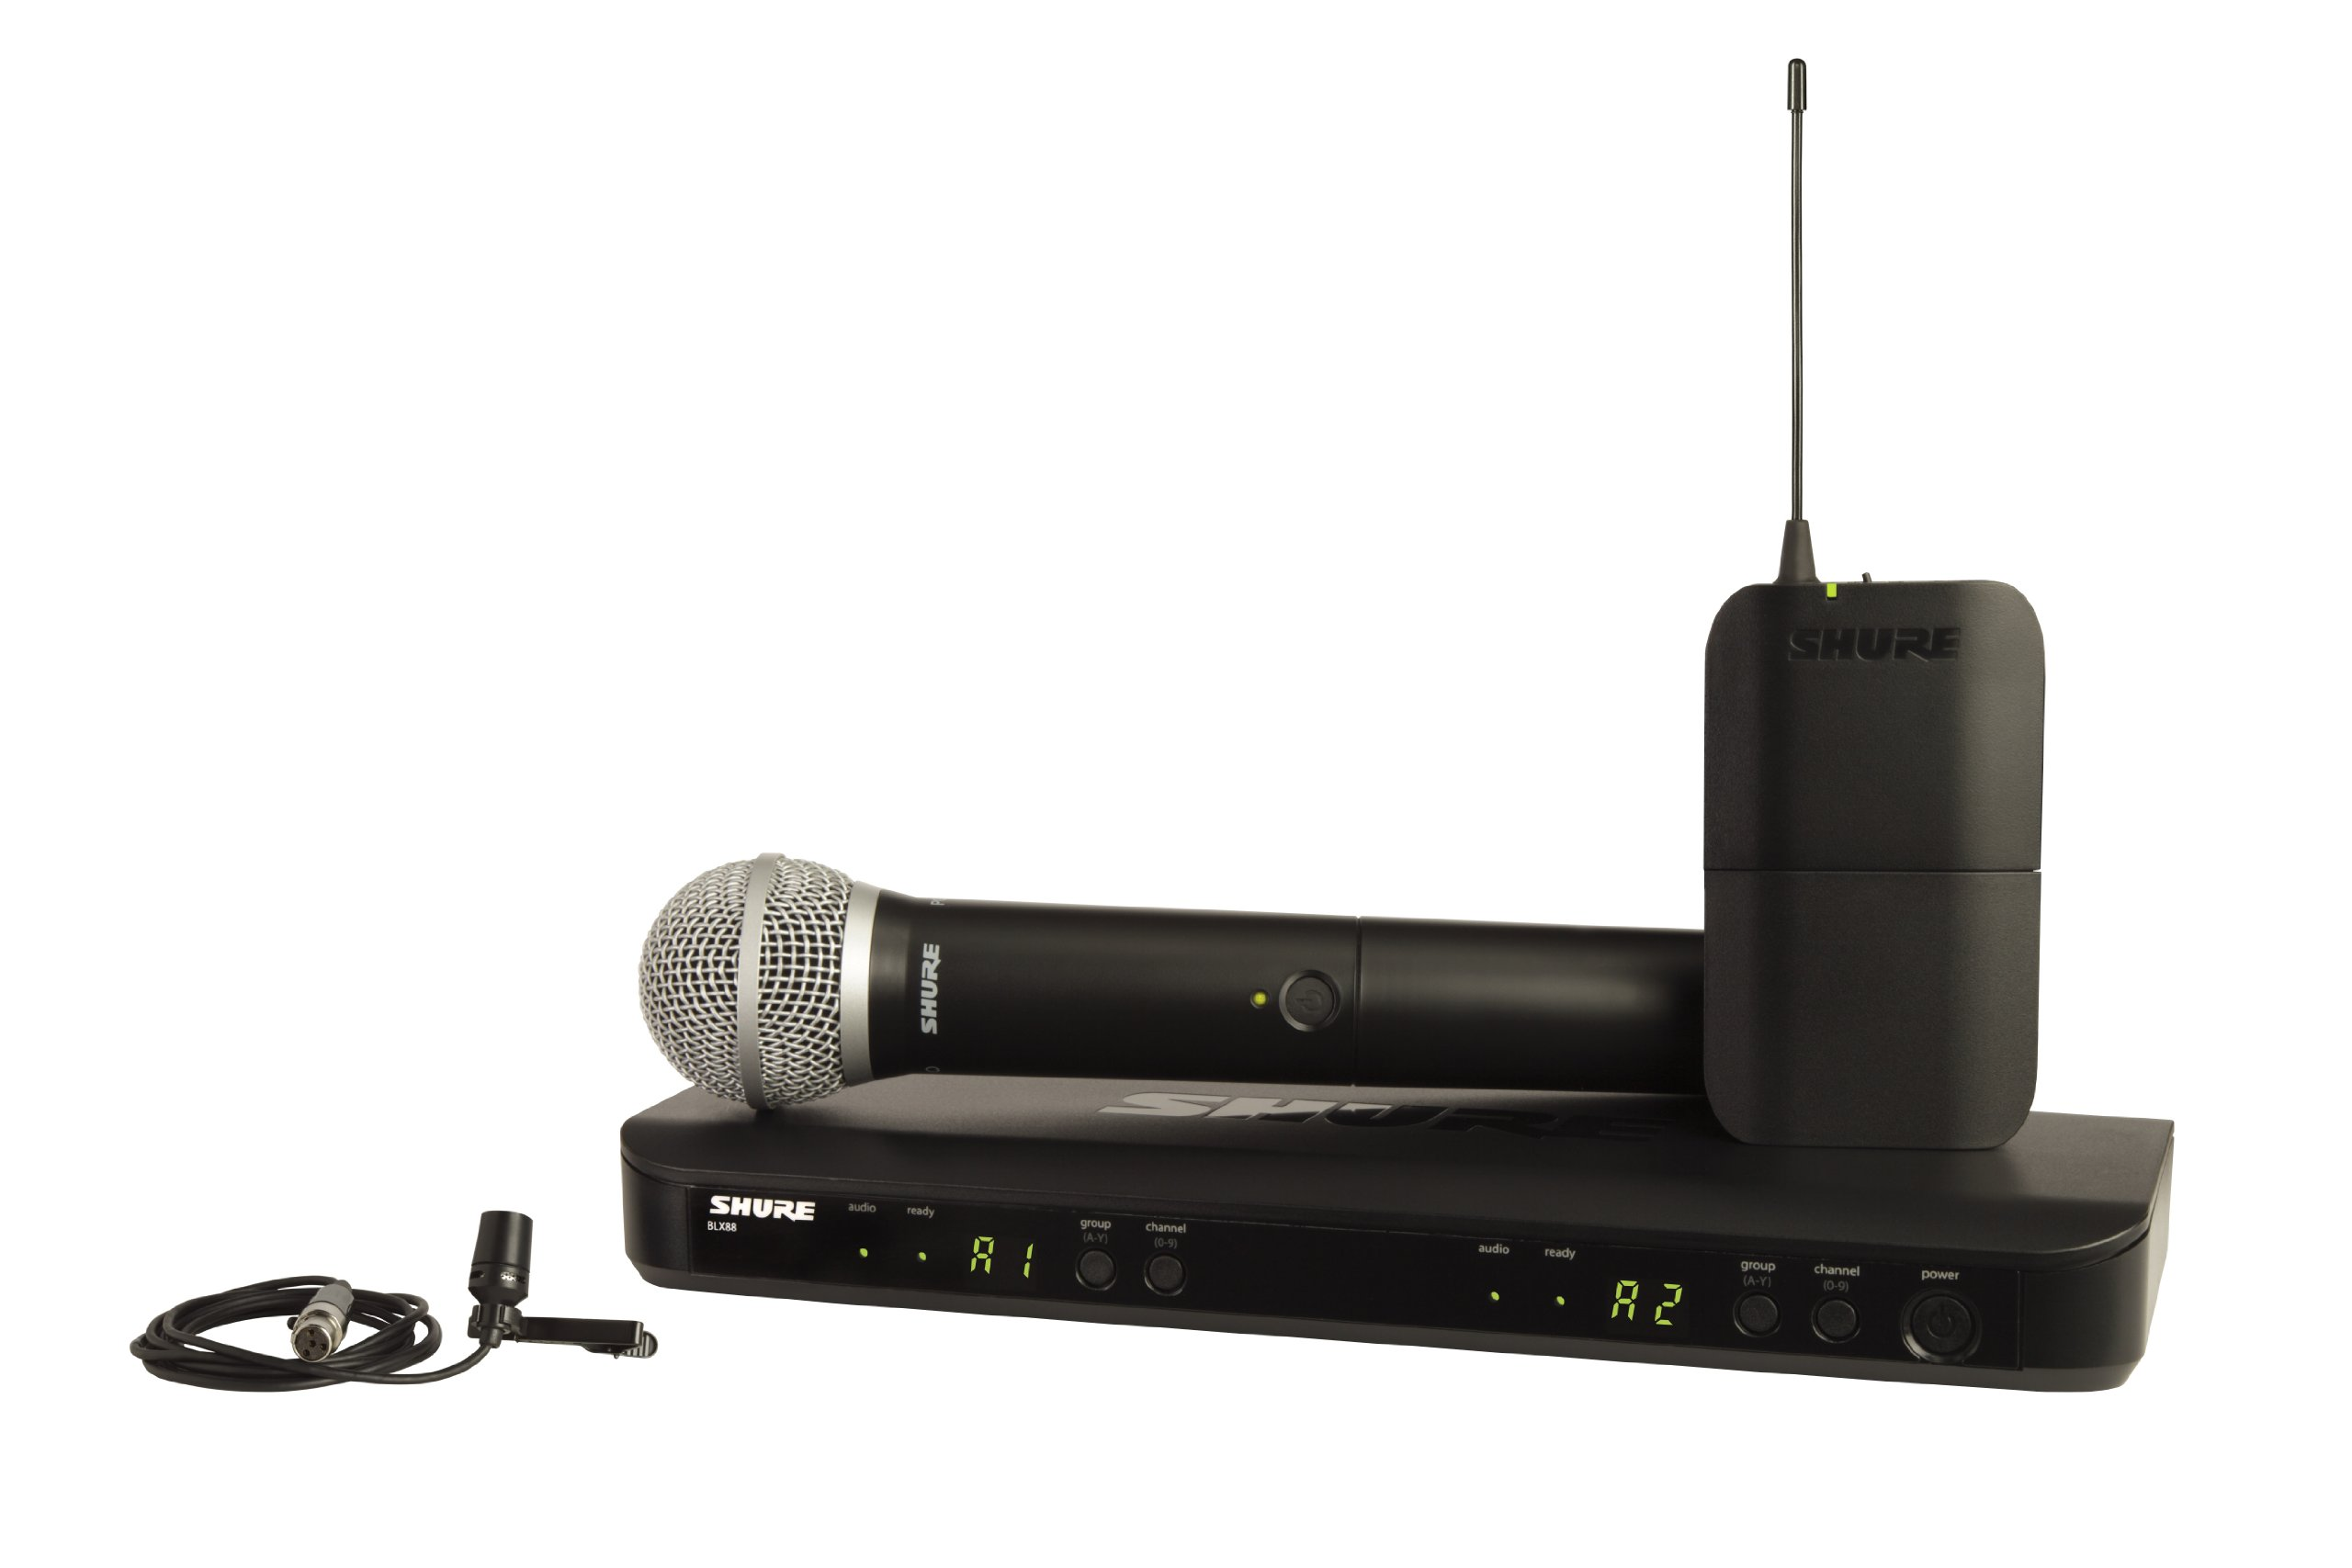 Shure BLX1288/CVL Dual Channel Combo Wireless System with PG58 Handheld and CVL Lavalier Microphones, J10 by Shure